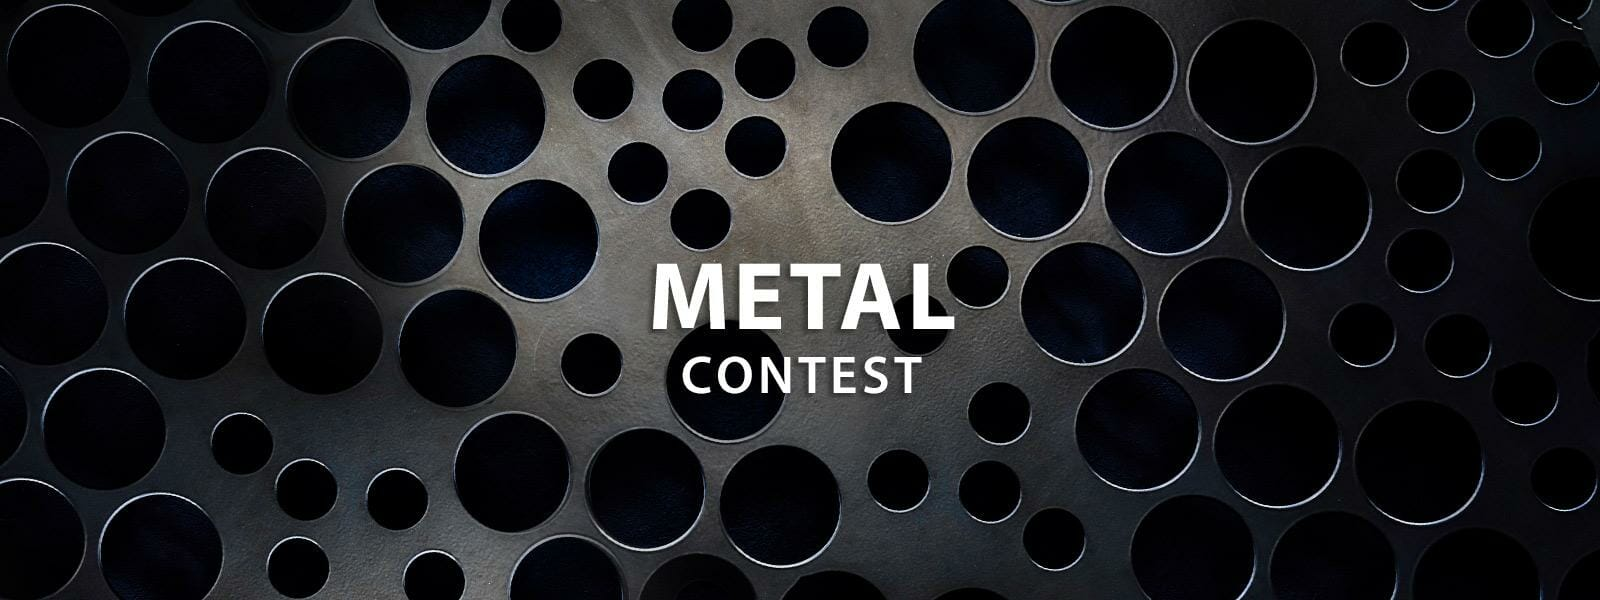 Make Something that includes Metal and Win a Gift Card of up to $500 through Metal Online Contest 2021